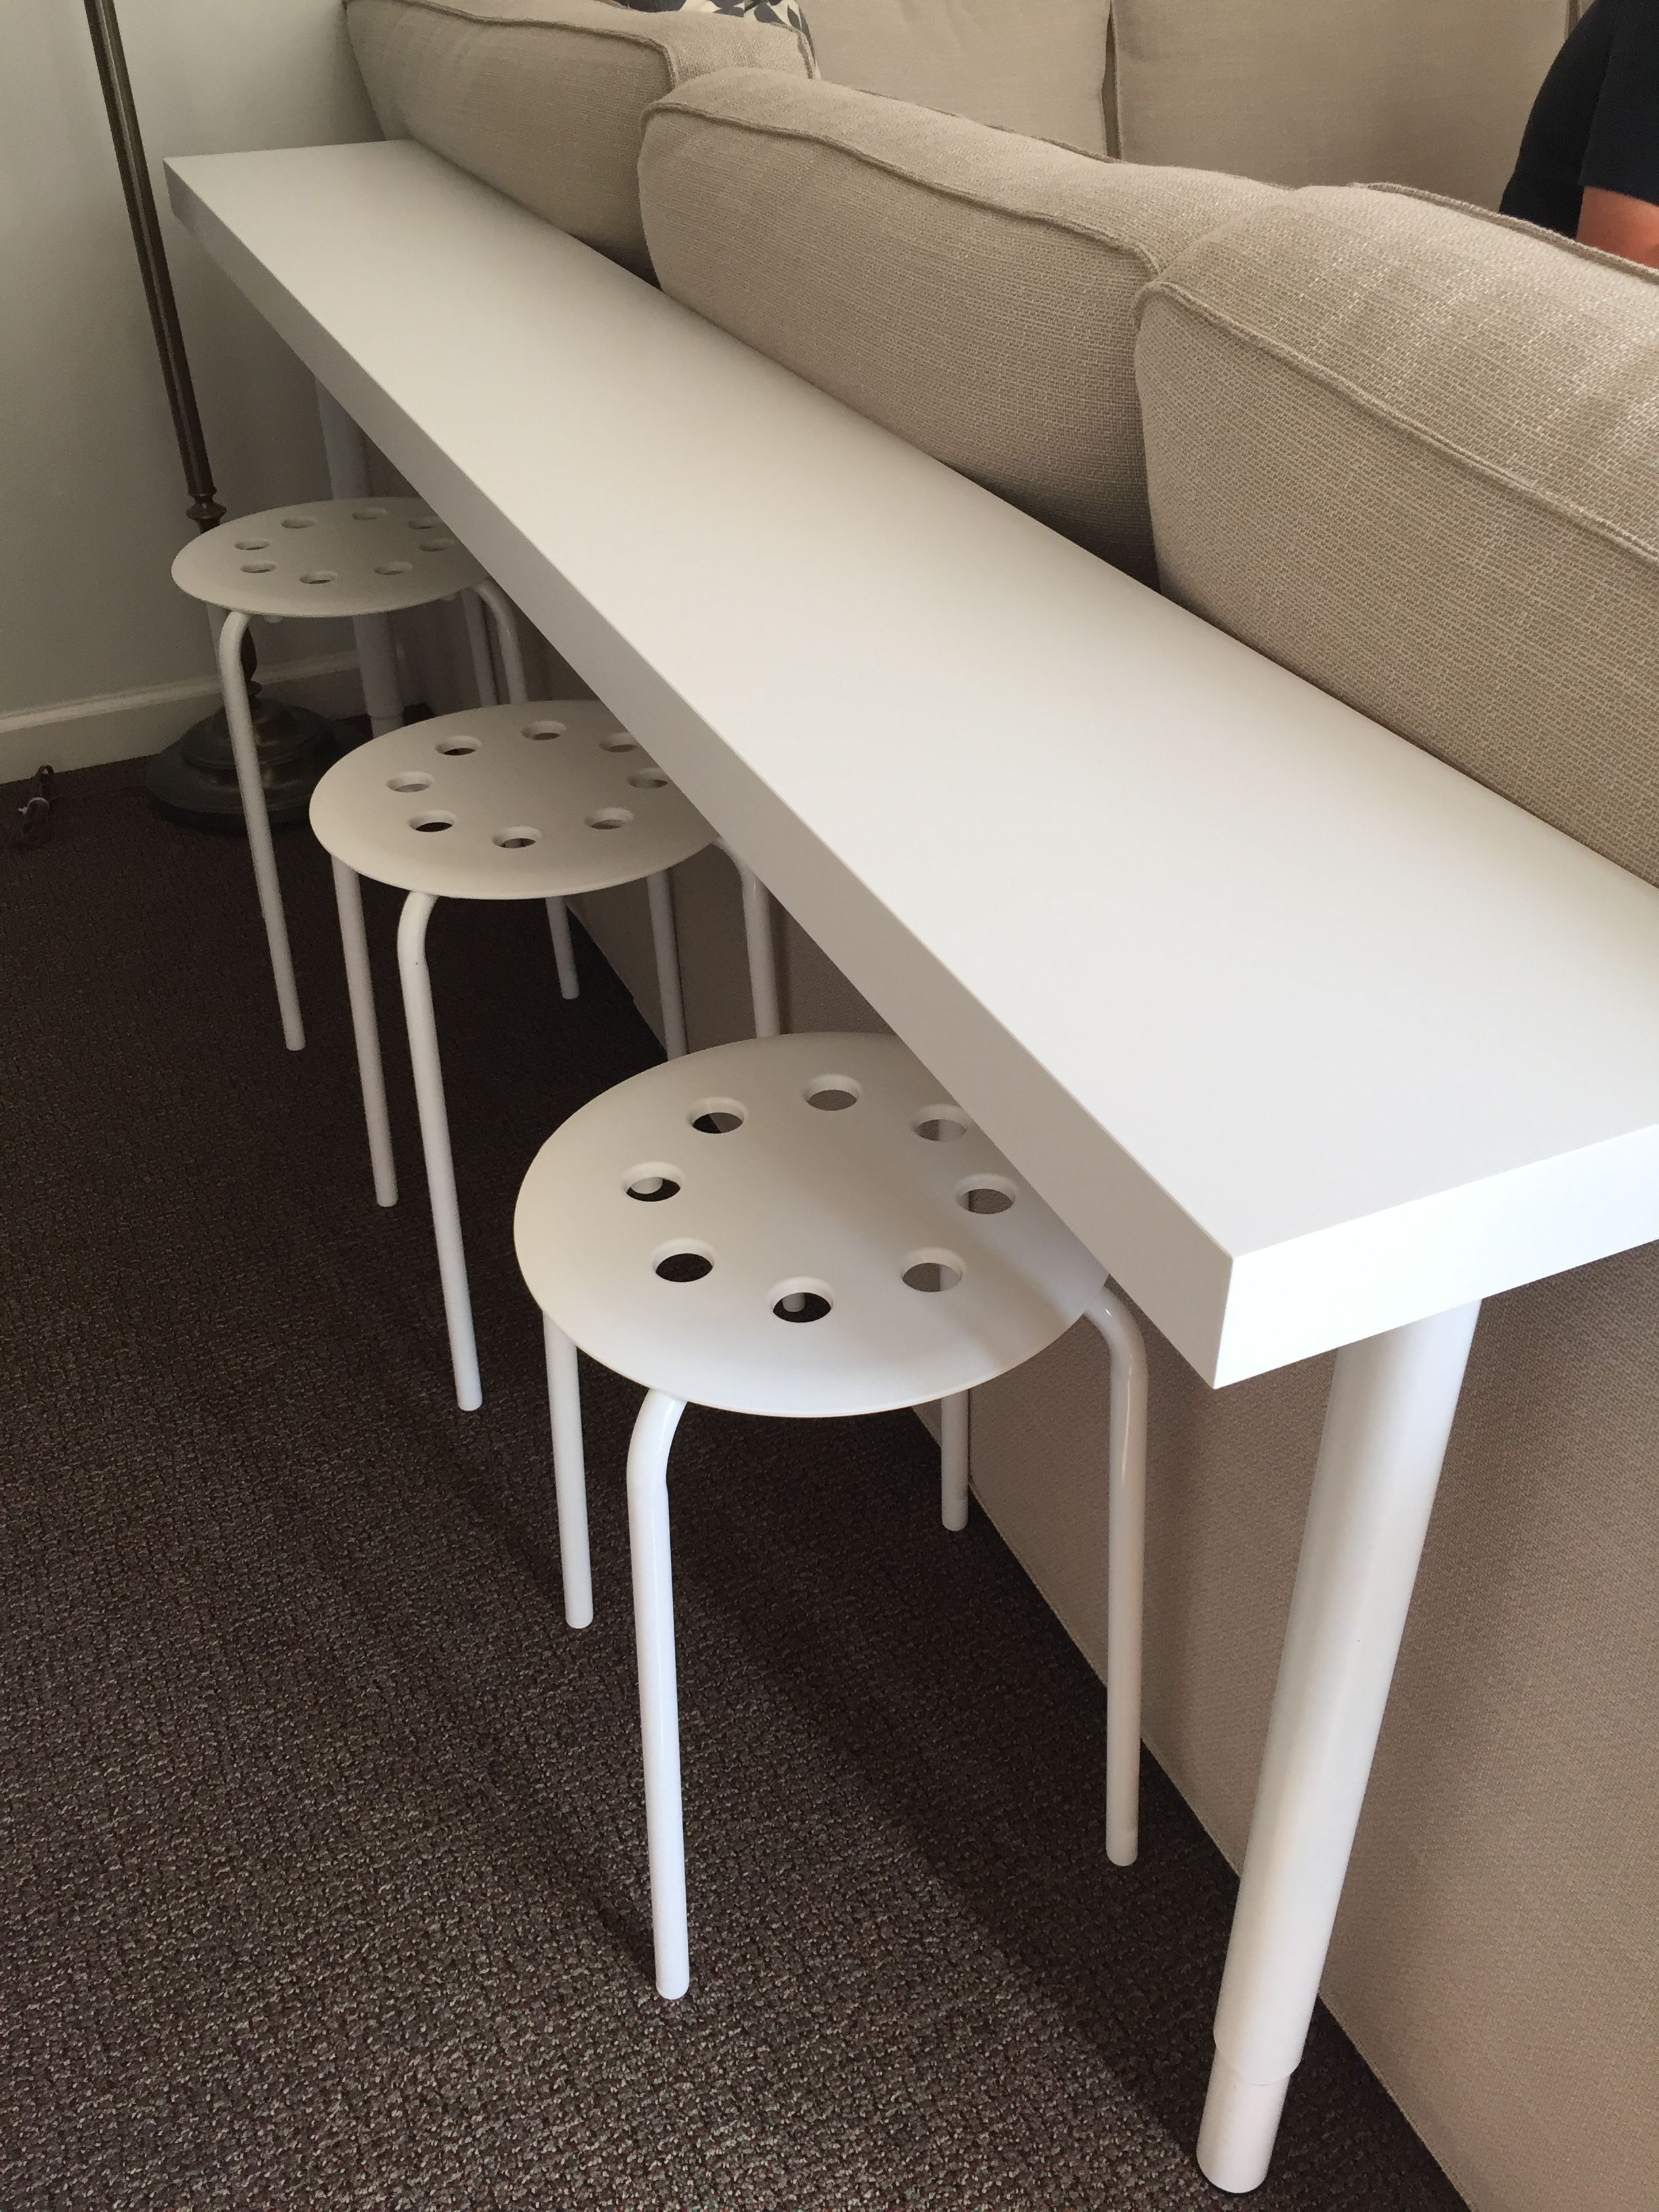 Interio Sofa Caddy Ikea Hack We Needed A Sofa Table In A Narrow Space This Lack